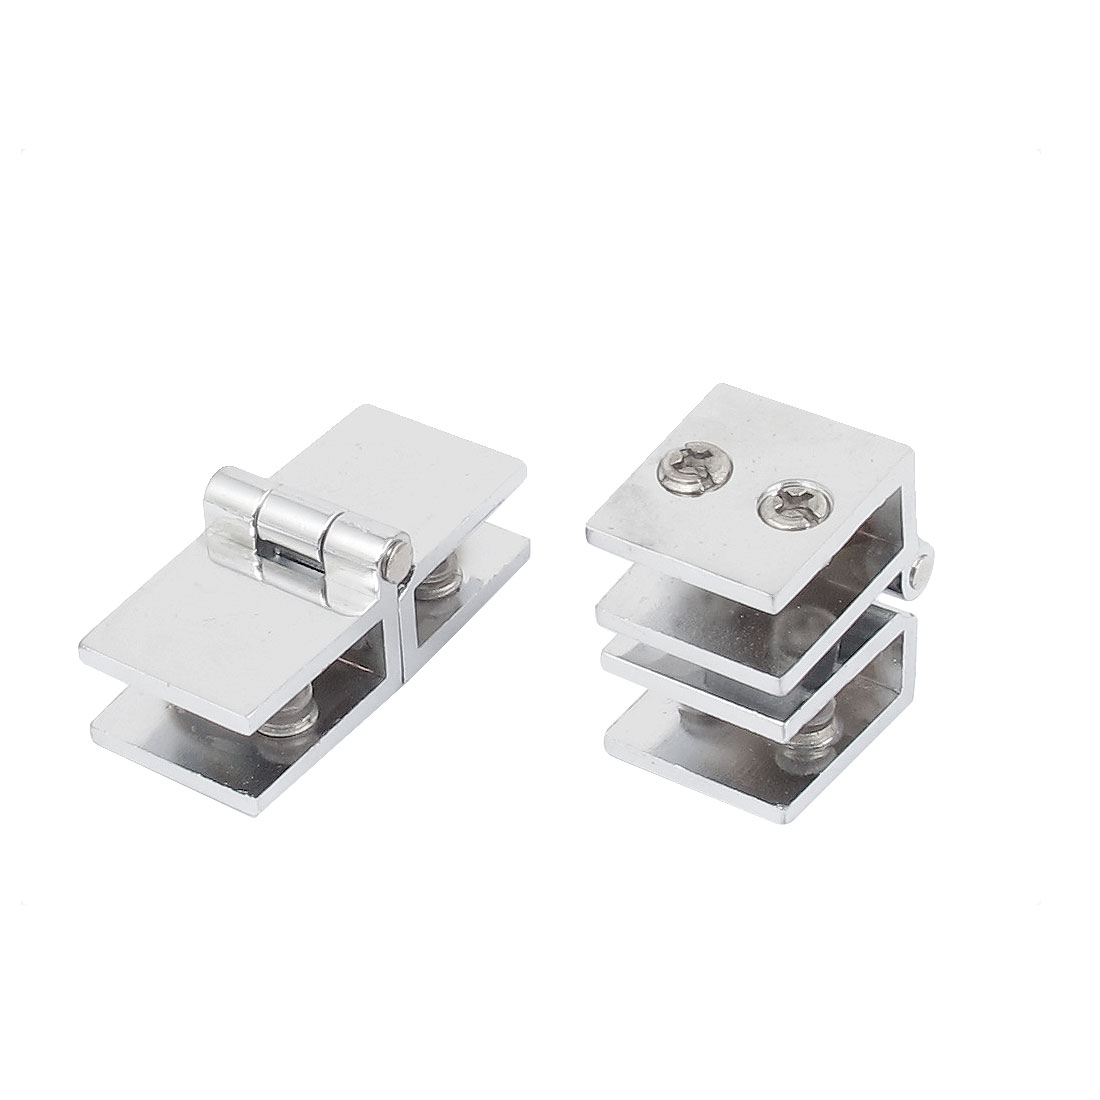 8mm Thickness 180 Degree Adjustable Metal Glass Shelf Clip Clamp Hinge 2pcs